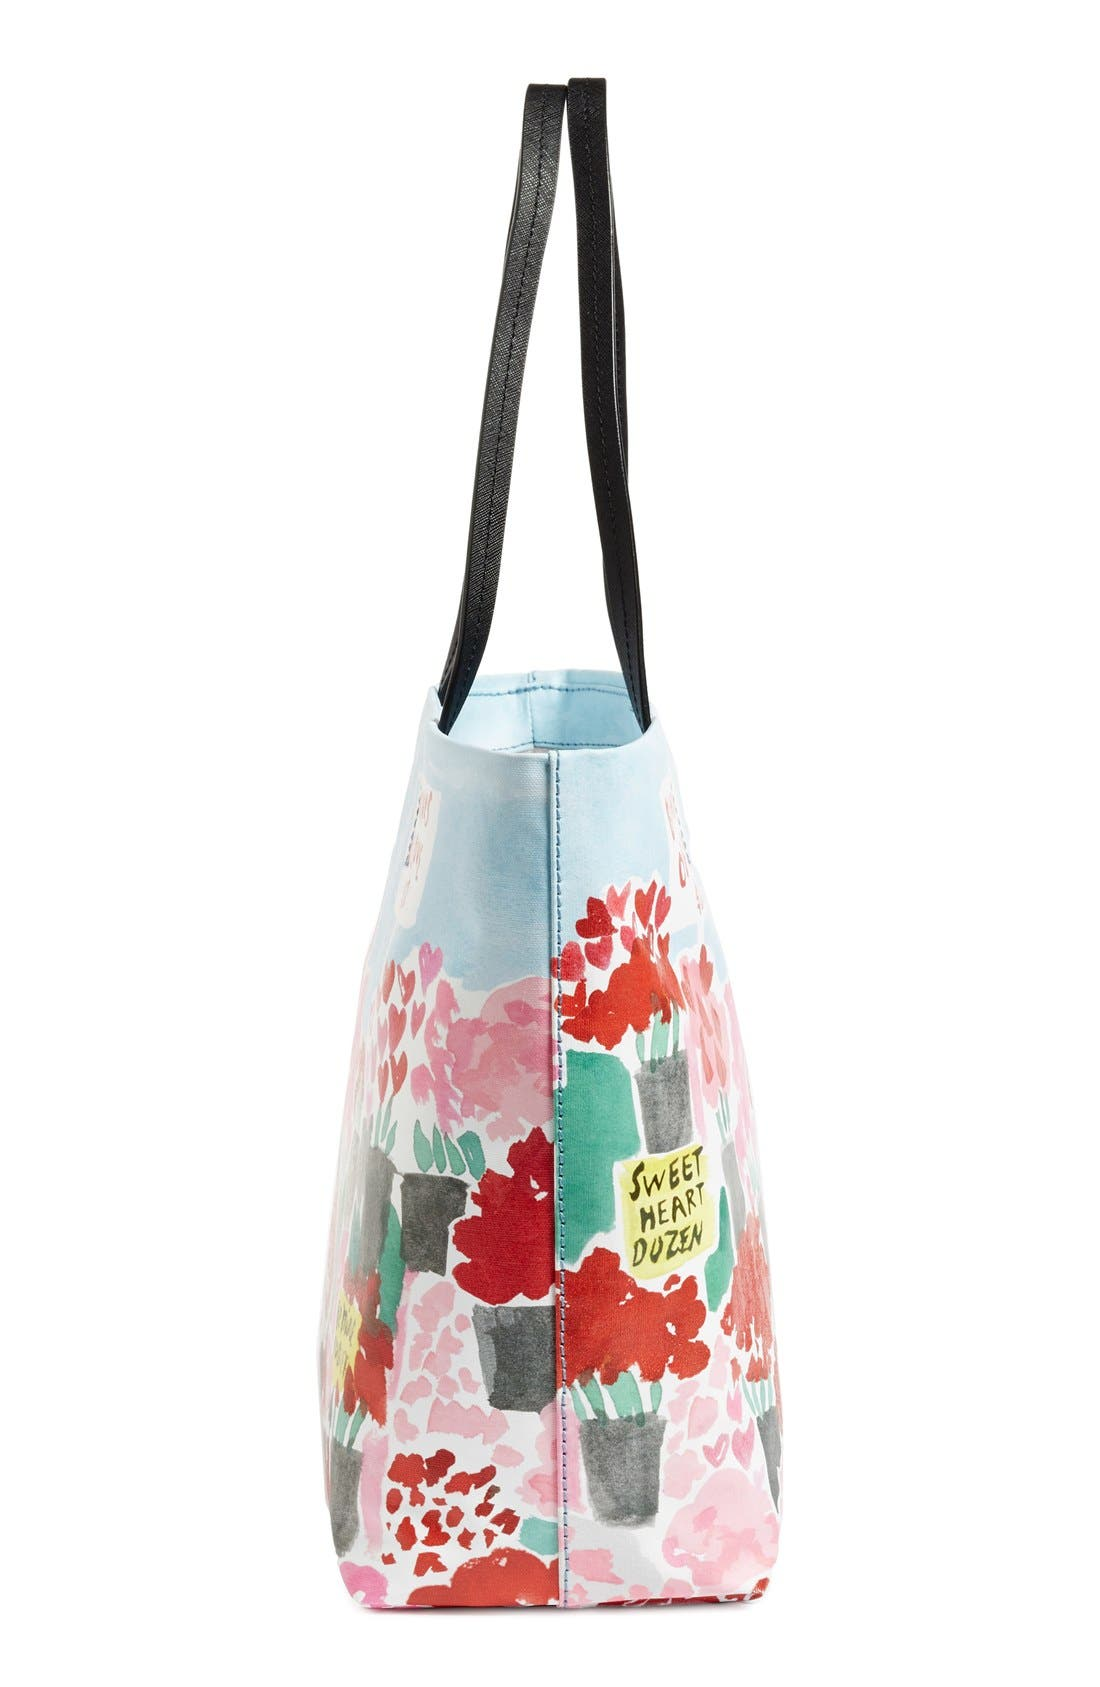 be mine rose scene hallie canvas tote,                             Alternate thumbnail 8, color,                             604